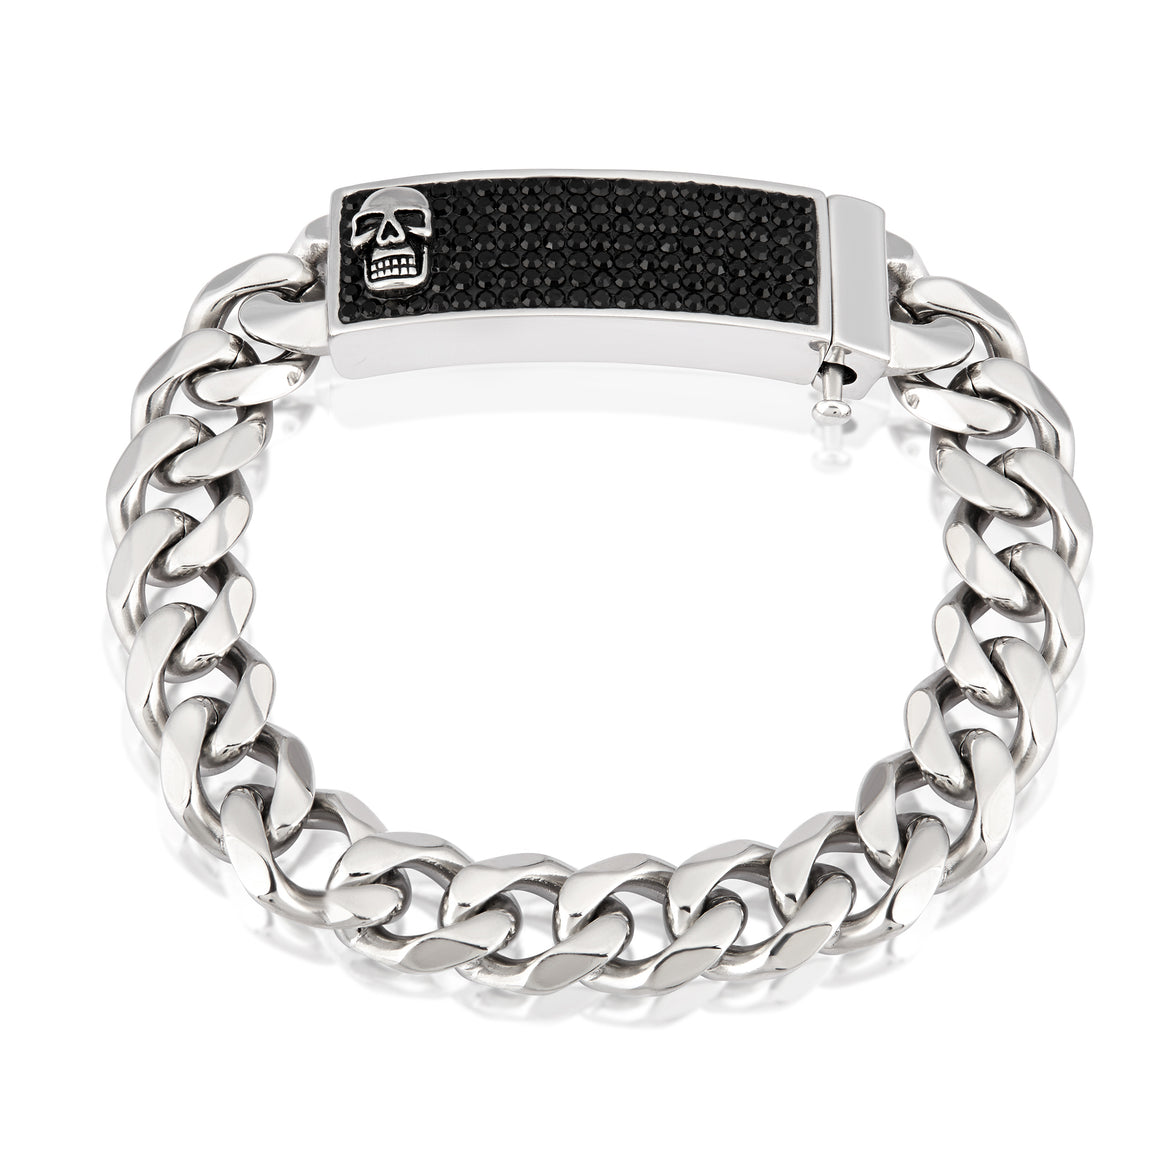 Crucible Stainless Steel Polished Crystal Skull ID Plate Curb Chain Link Bracelet (16 mm) - 9""